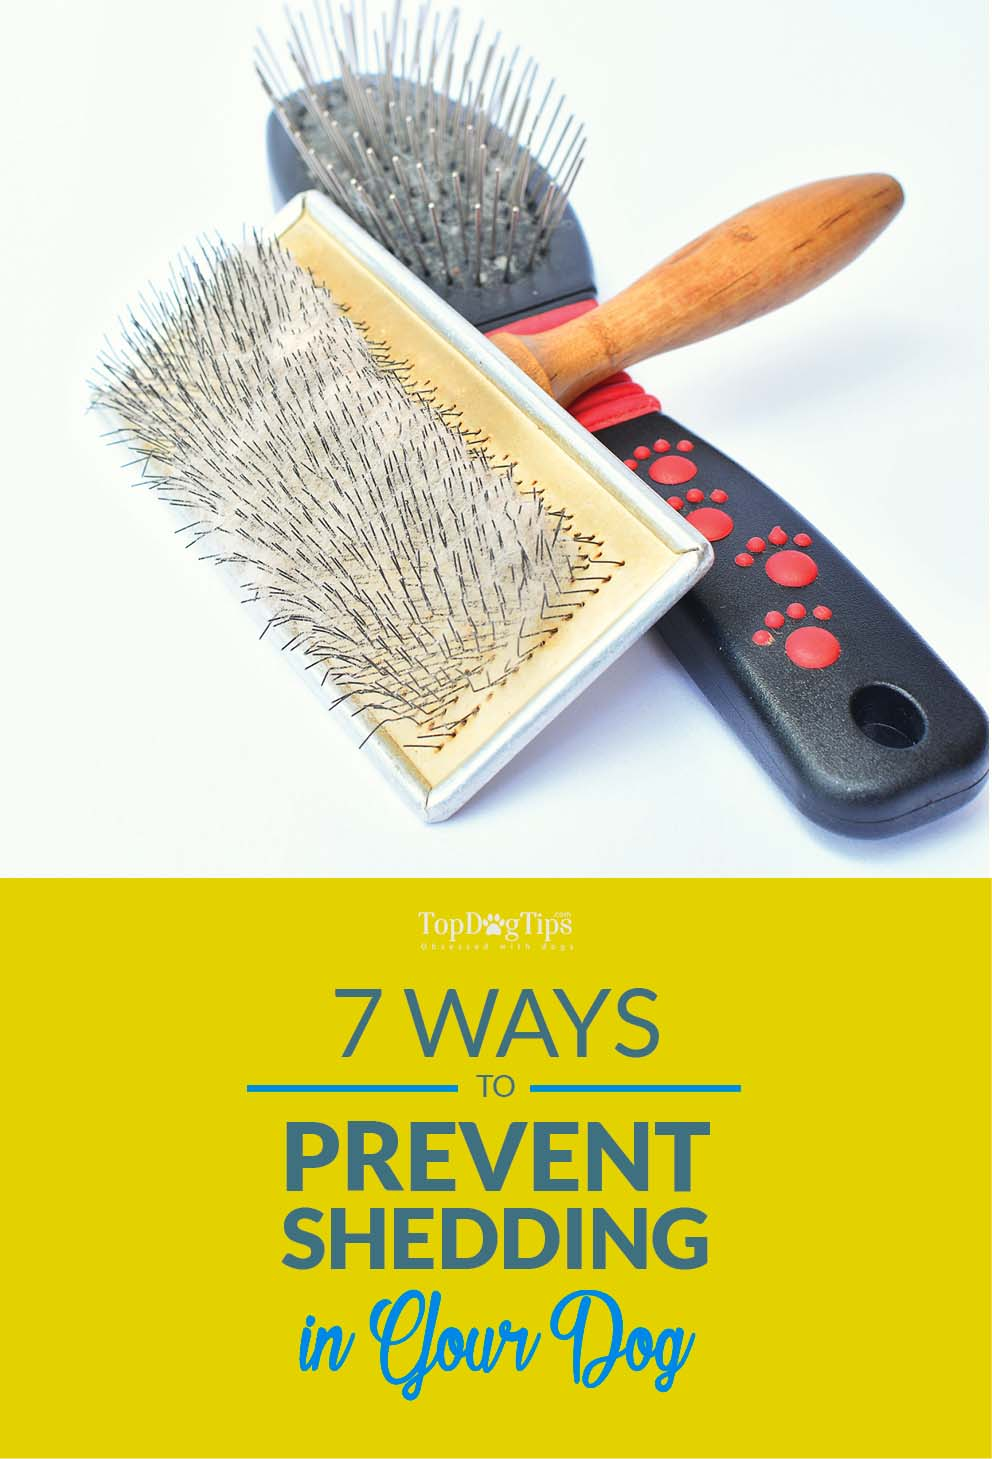 9 Tips on How to Prevent Shedding in Dogs and Keep Dog